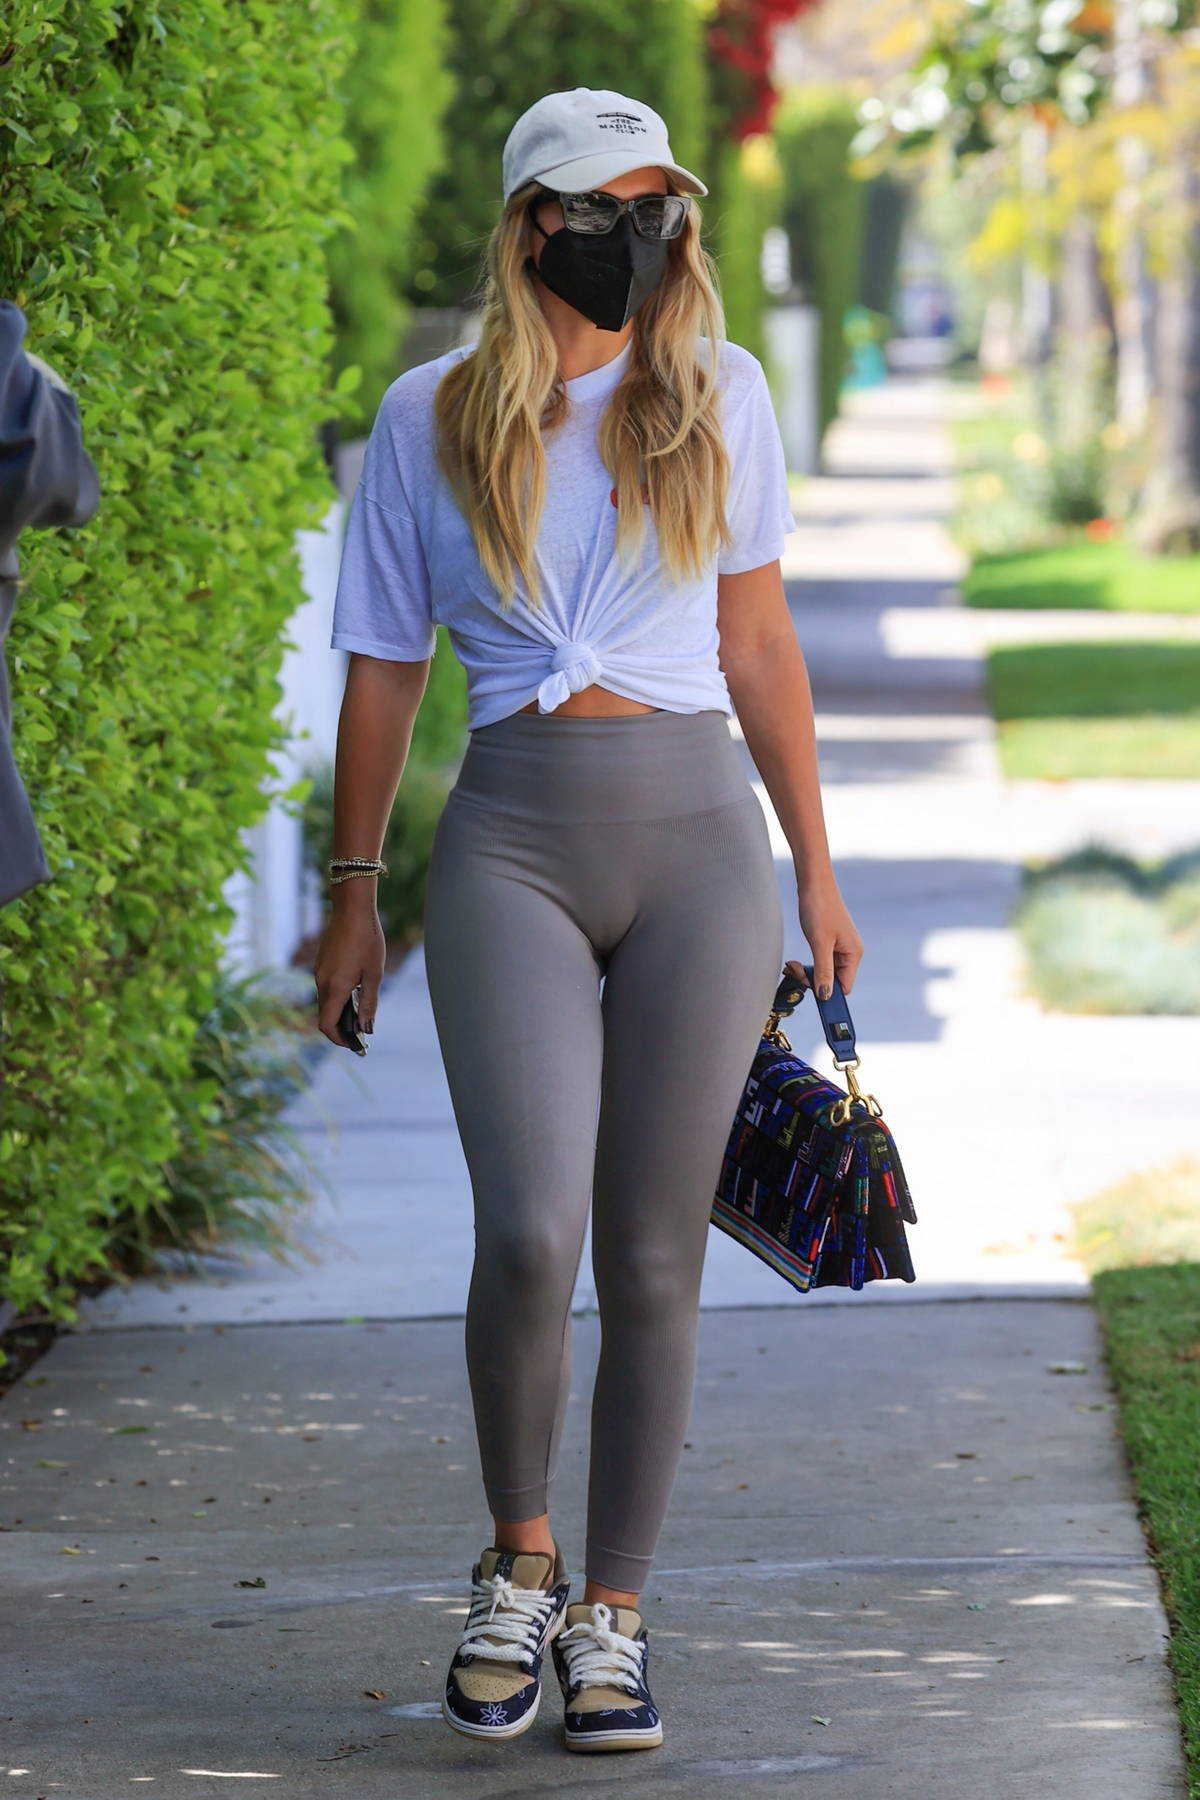 Sofia Richie shows off her toned legs in grey leggings as she attends a Pilates class in West Hollywood, California